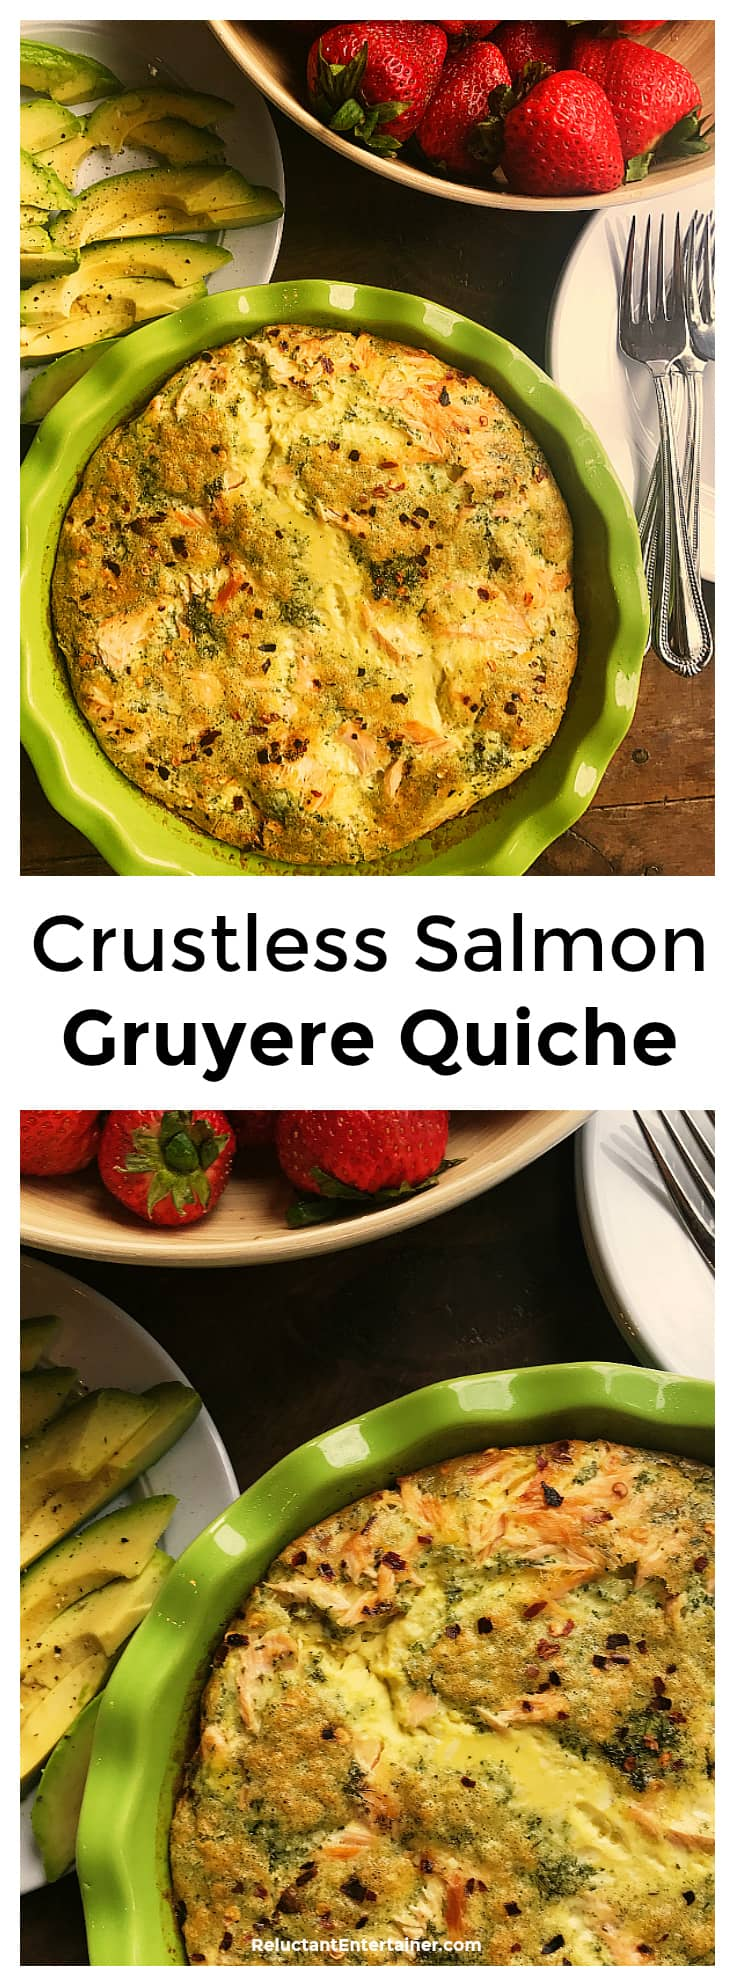 Crustless Salmon Gruyere Quiche Recipe